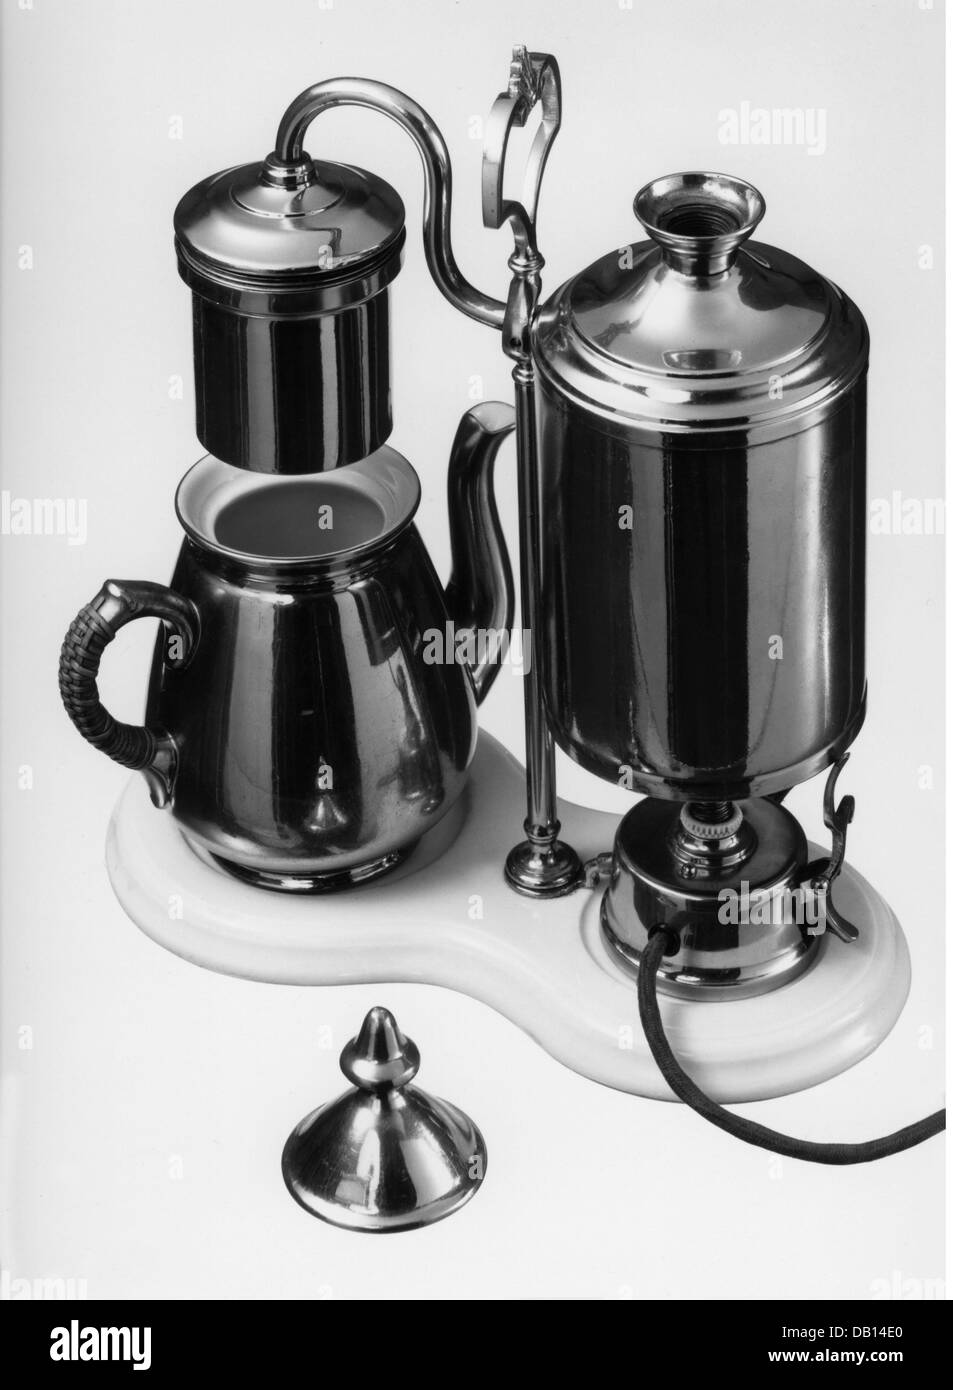 Industrial Coffee Makers Household Kitchen And Kitchenware First Electric Coffee Maker